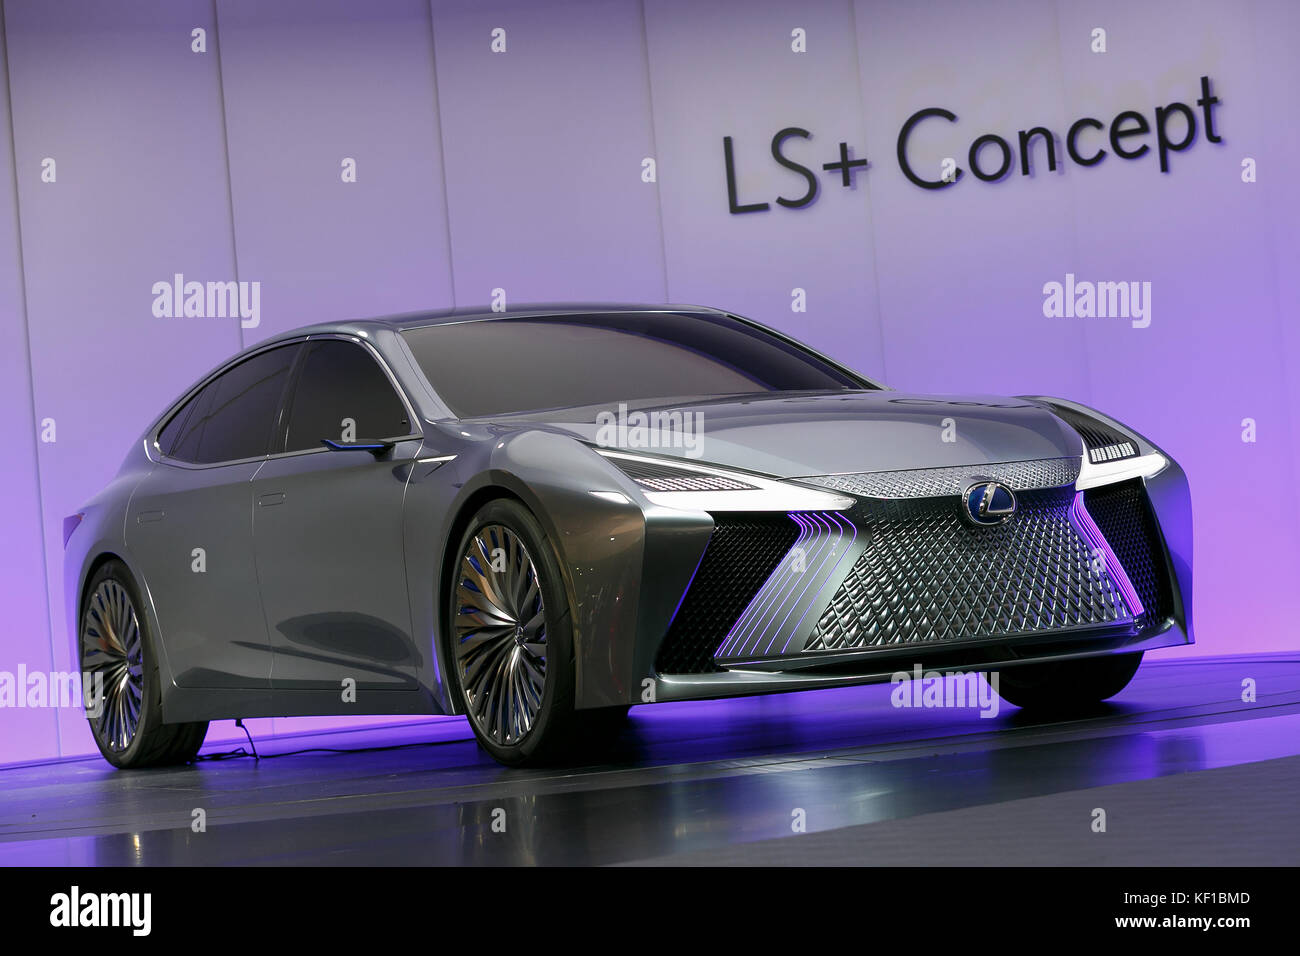 https://c8.alamy.com/comp/KF1BMD/tokyo-japan-25th-oct-2017-lexus-ls-plus-concept-vehicle-on-display-KF1BMD.jpg